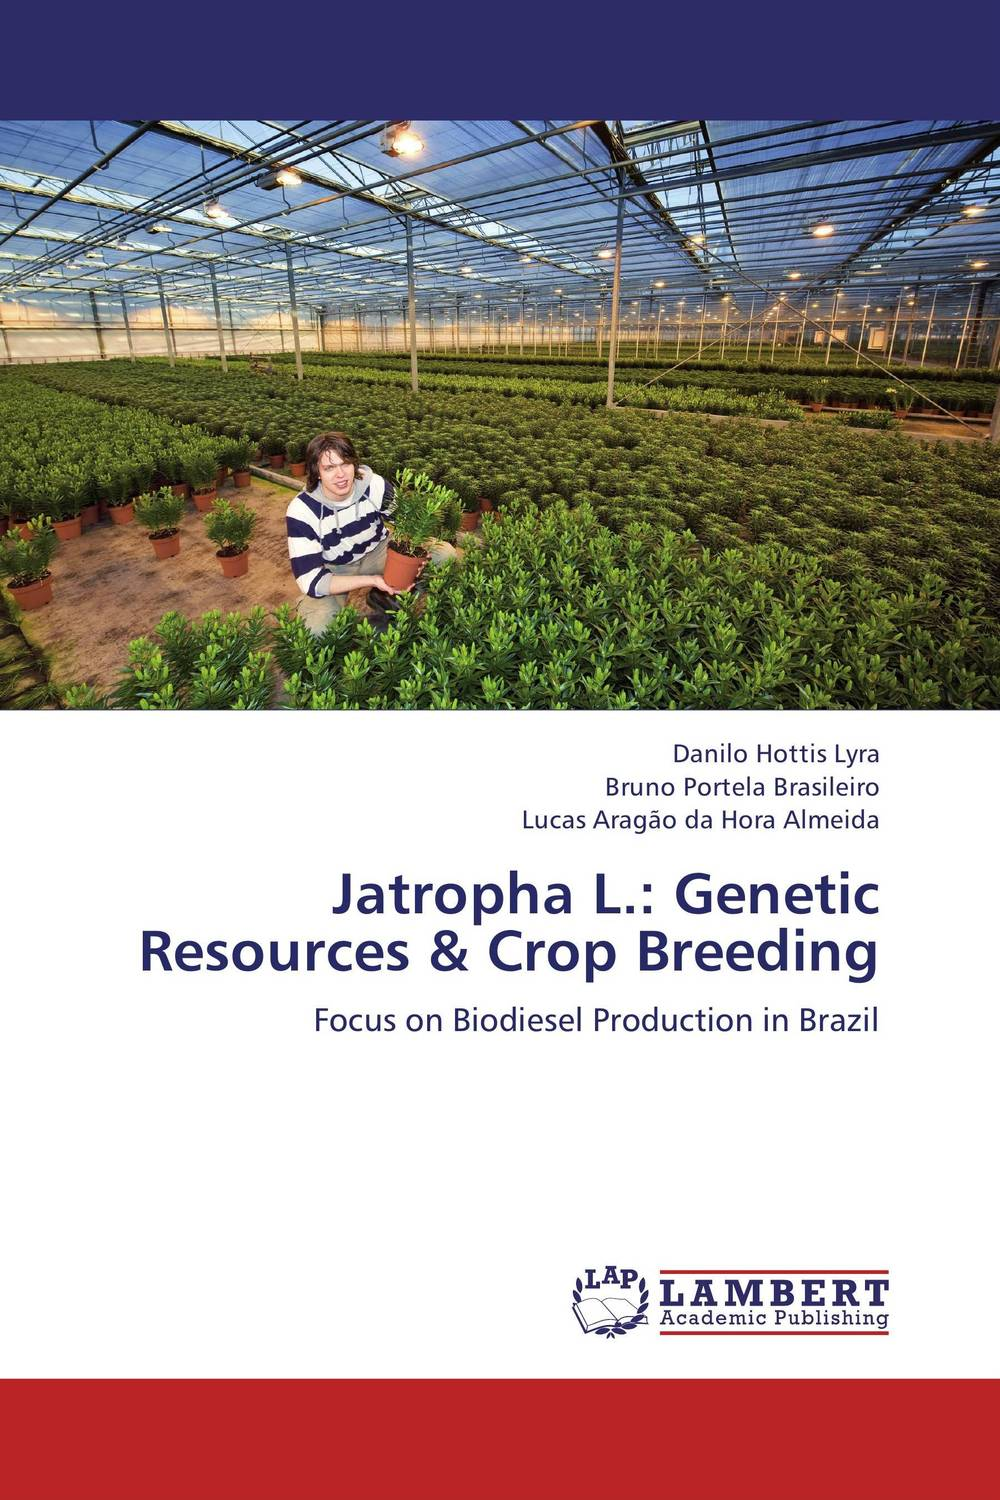 Jatropha L.: Genetic Resources & Crop Breeding mylsamy prabhakaran and sanniyasi elumalai application of genetic engineering in pigeon pea crop improvement